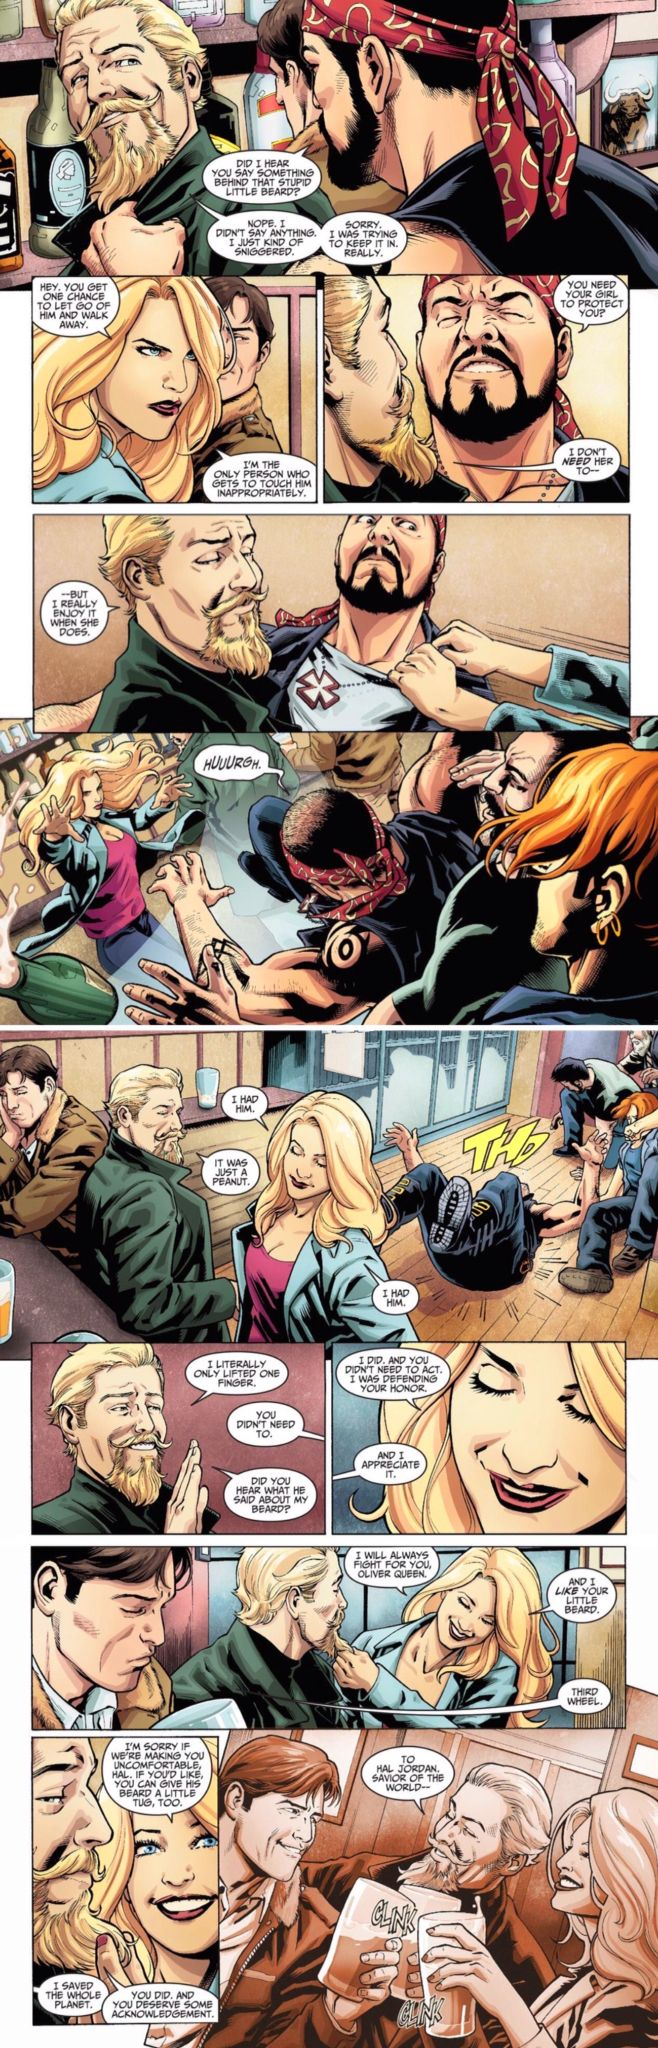 GREEN ARROW AND BLACK CANARY • INJUSTICE: GODS AMONG US: YEAR TWO: CHAPTER ONE